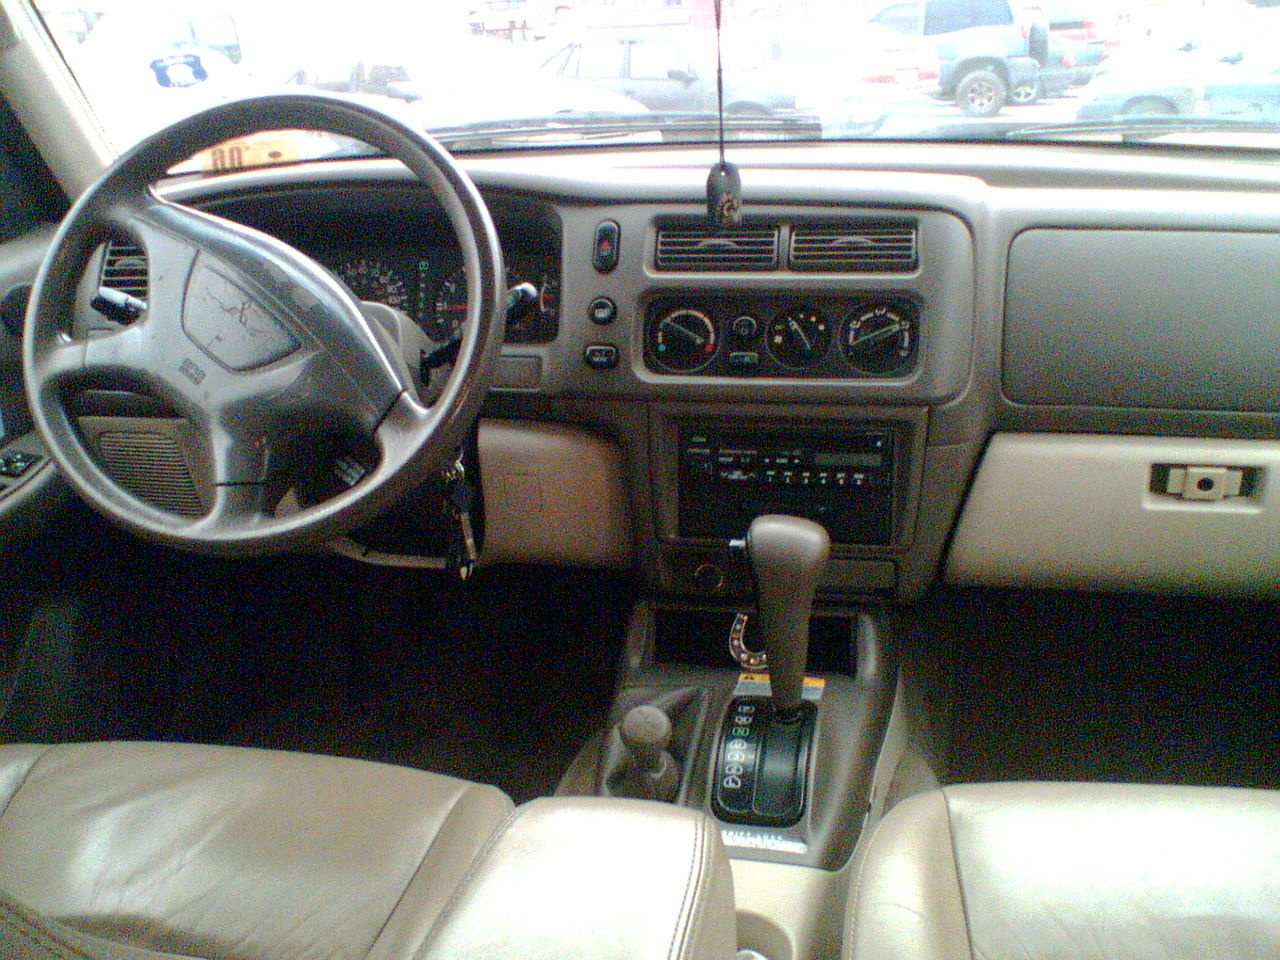 16 answers - 2015 Mitsubishi Montero Interior